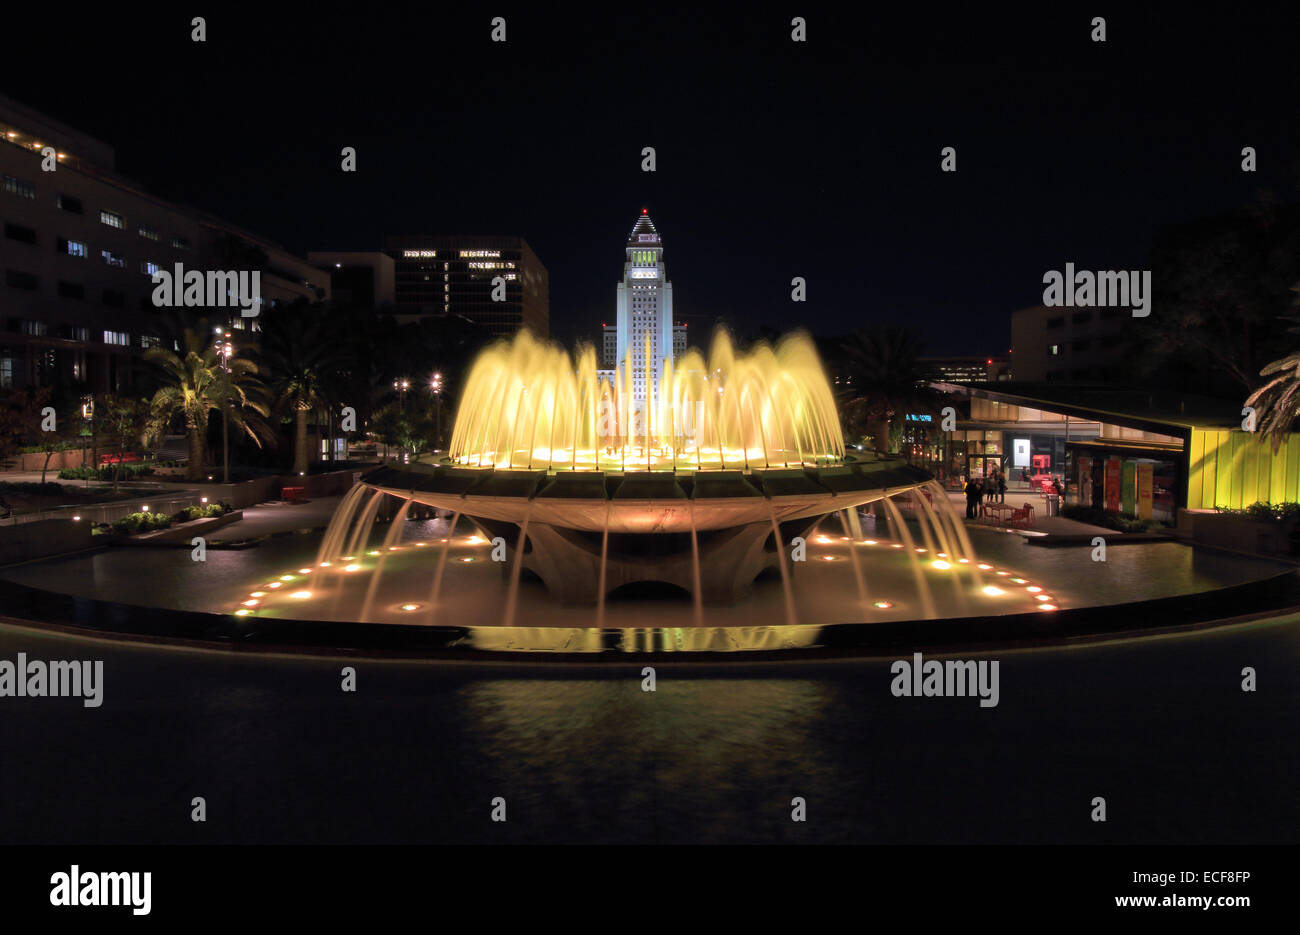 Grand Park Fountains in downtown Los Angeles with City Hall in the background. - Stock Image